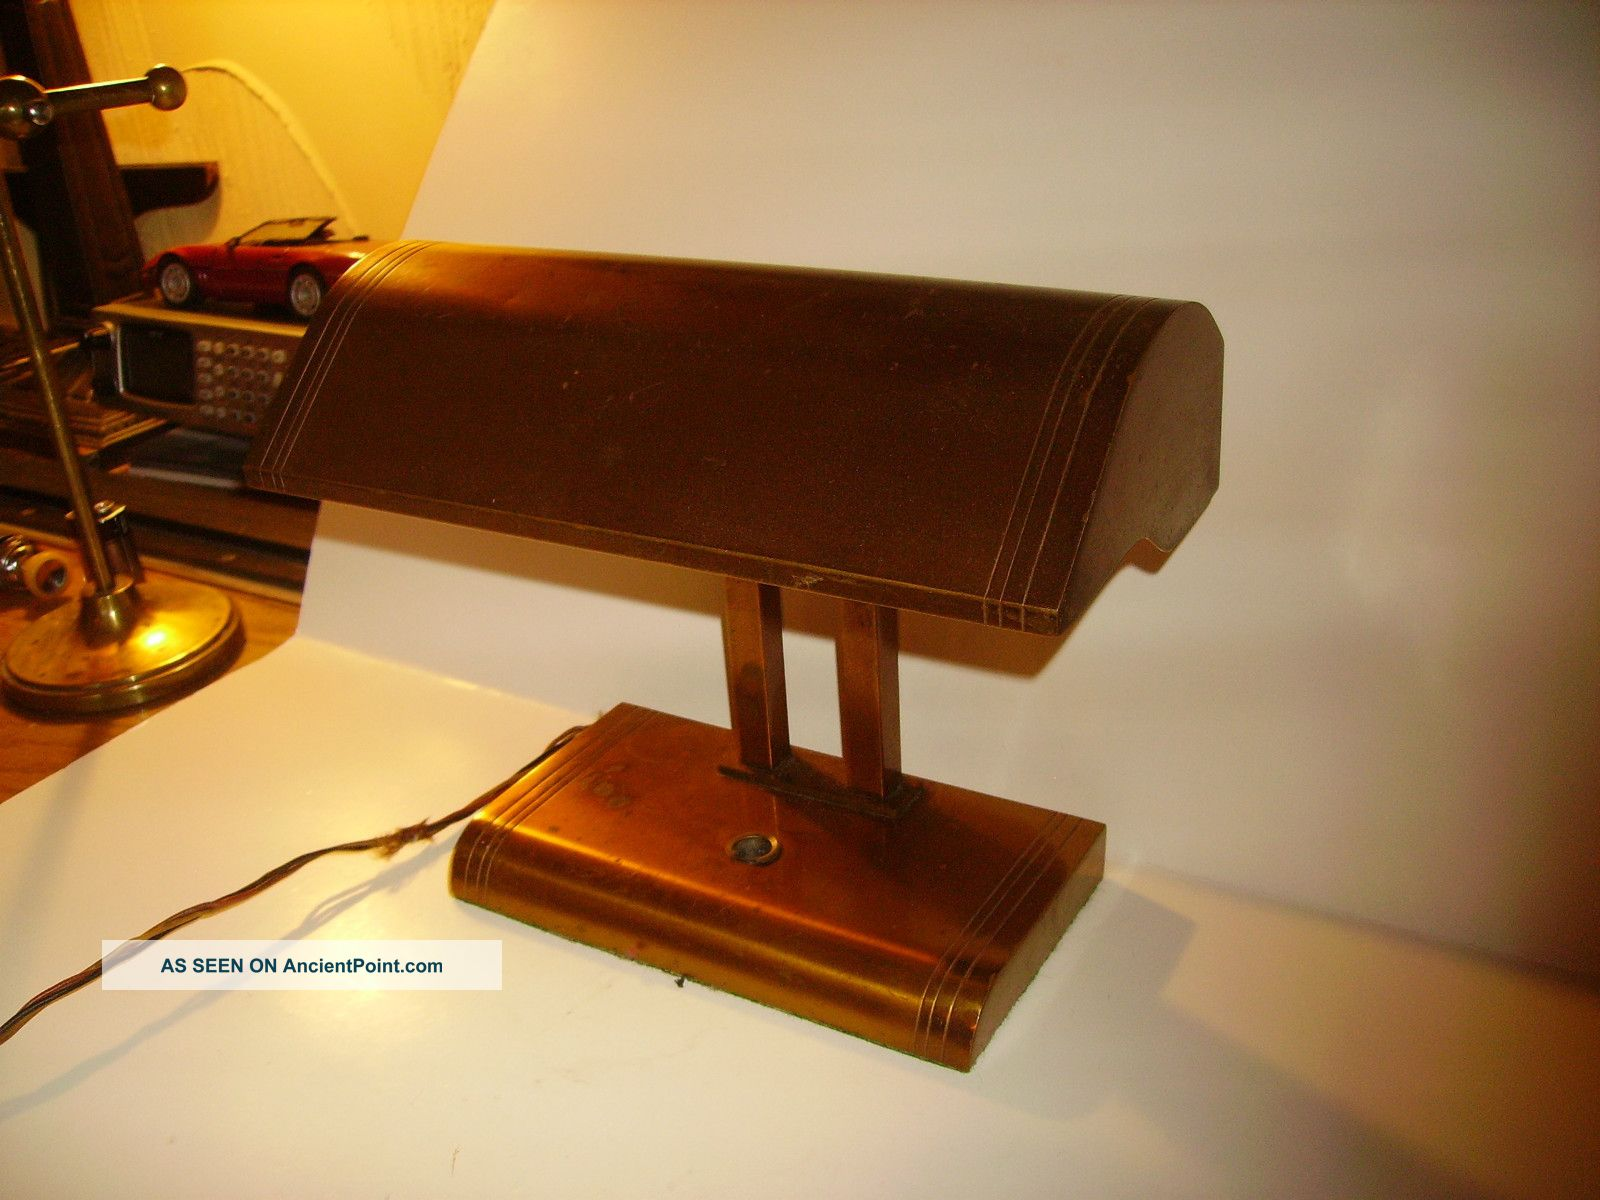 Vintage bankers desk lamp -  Old Fashioned Desk Lamp Hostgarcia Old Desk Lamp Vintage